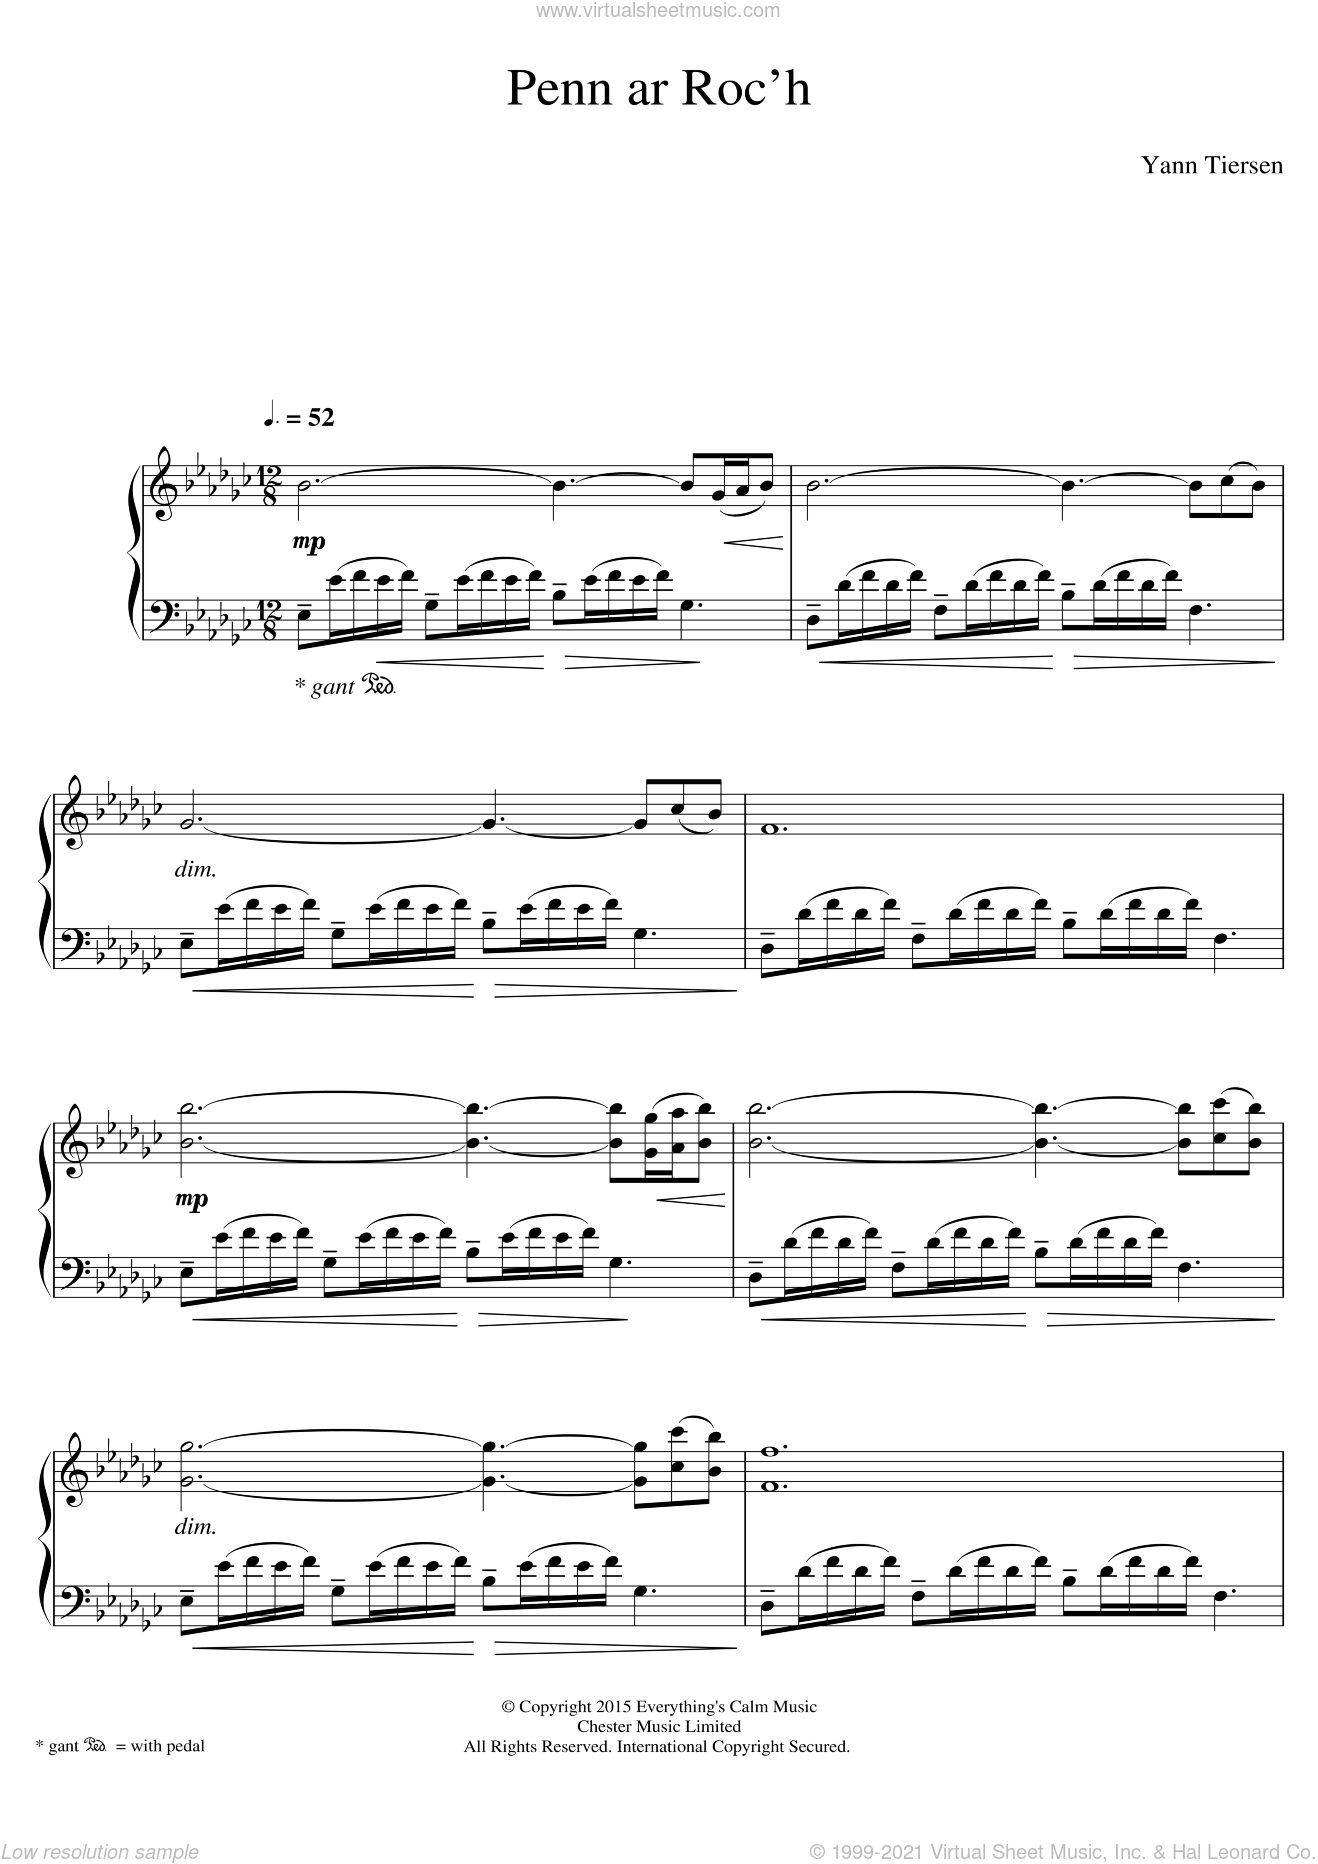 Penn Ar Roc'h sheet music for piano solo by Yann Tiersen, classical score, intermediate. Score Image Preview.